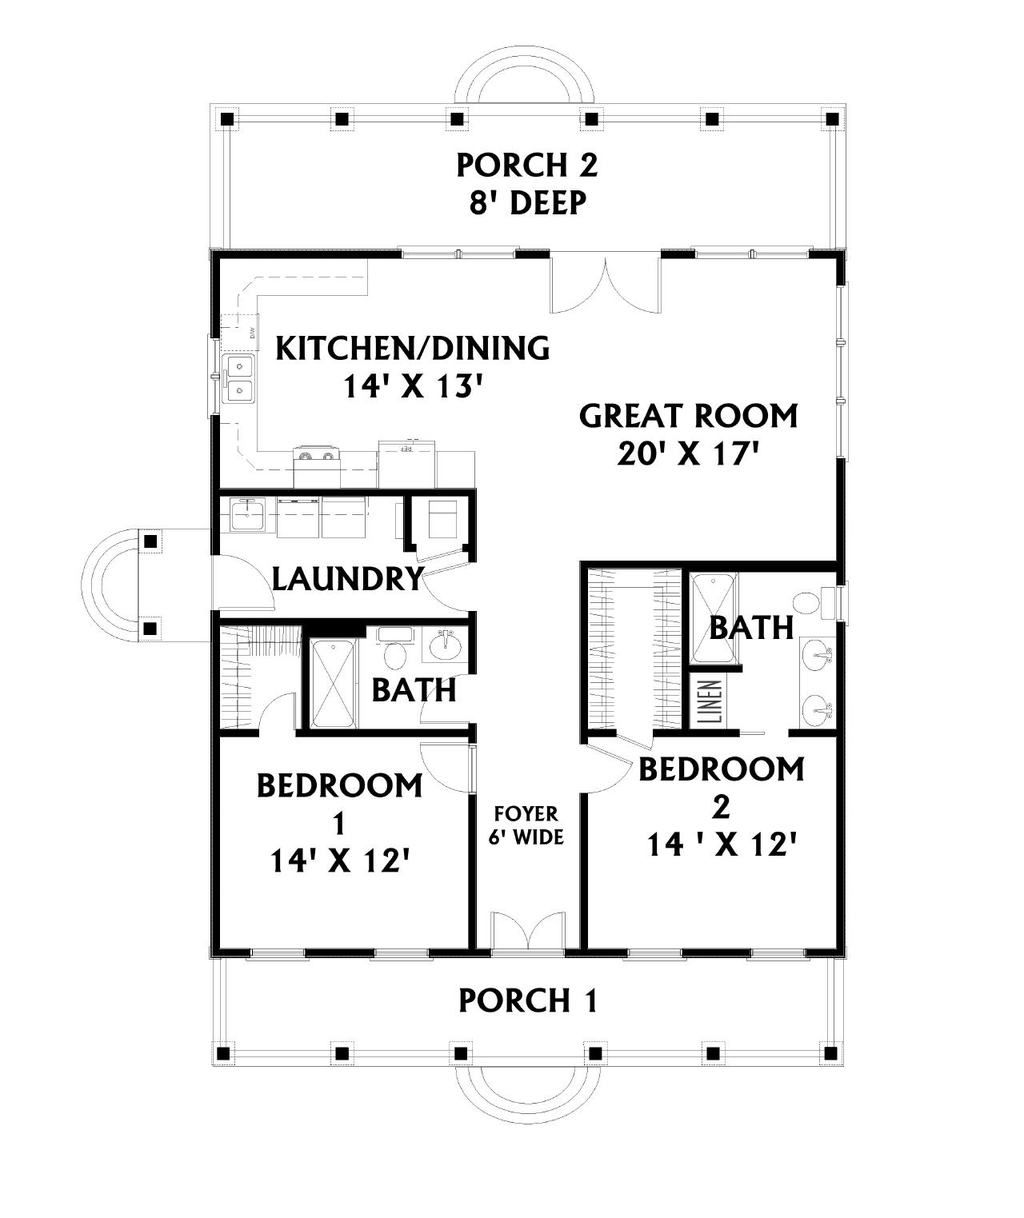 Two Bed Two Bath House Plans Cottage Country Farm House Cape Cod 1292 Sq Ft 2 Bed W Bath